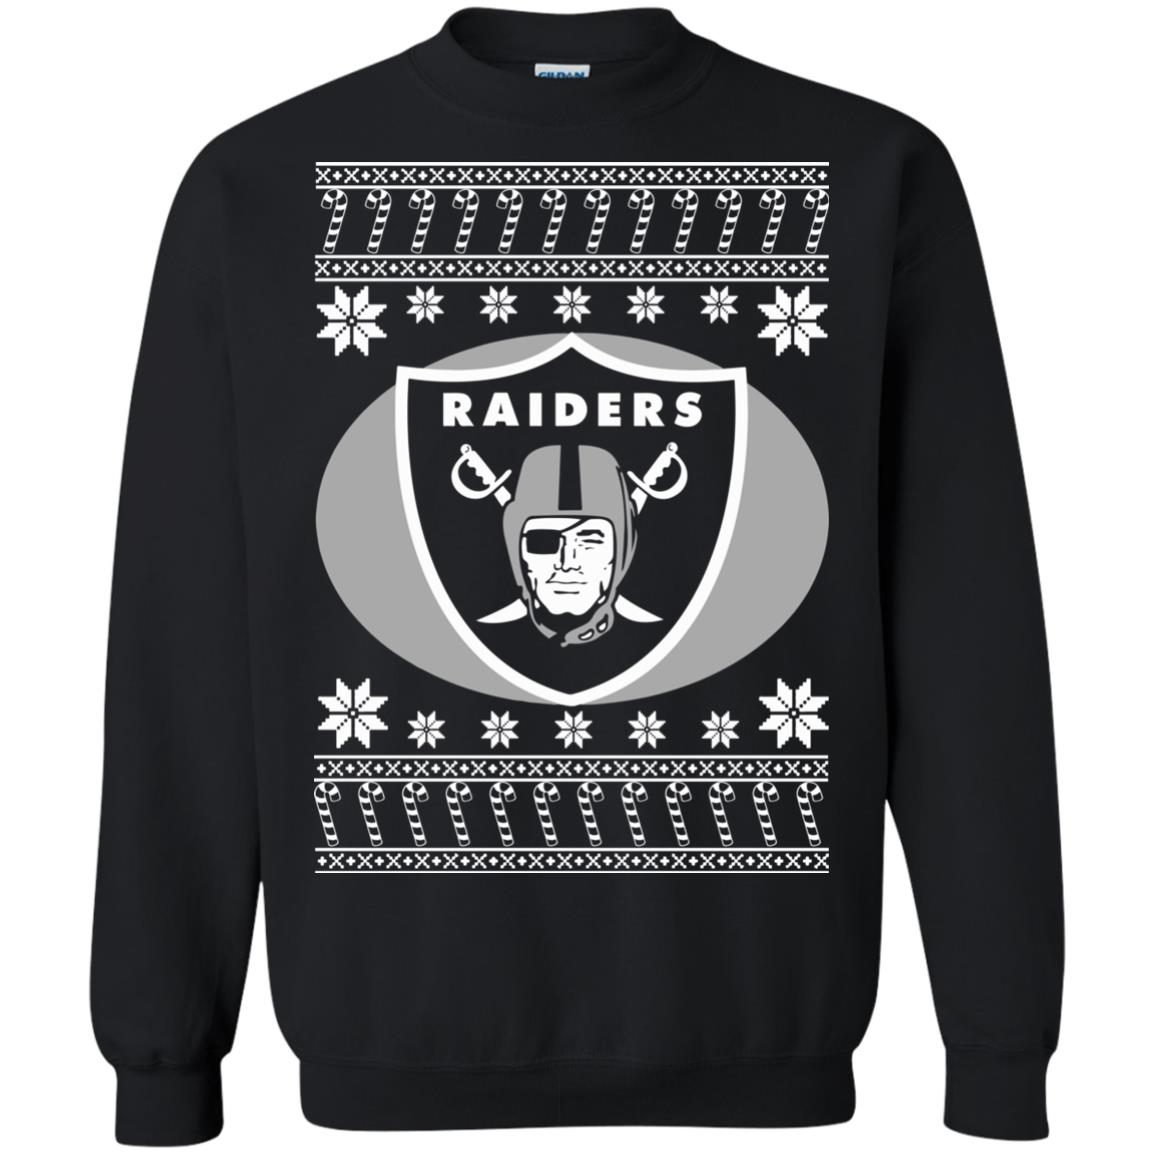 Oakland Raiders Christmas Sweater, Ugly Sweatshirts - Rockatee